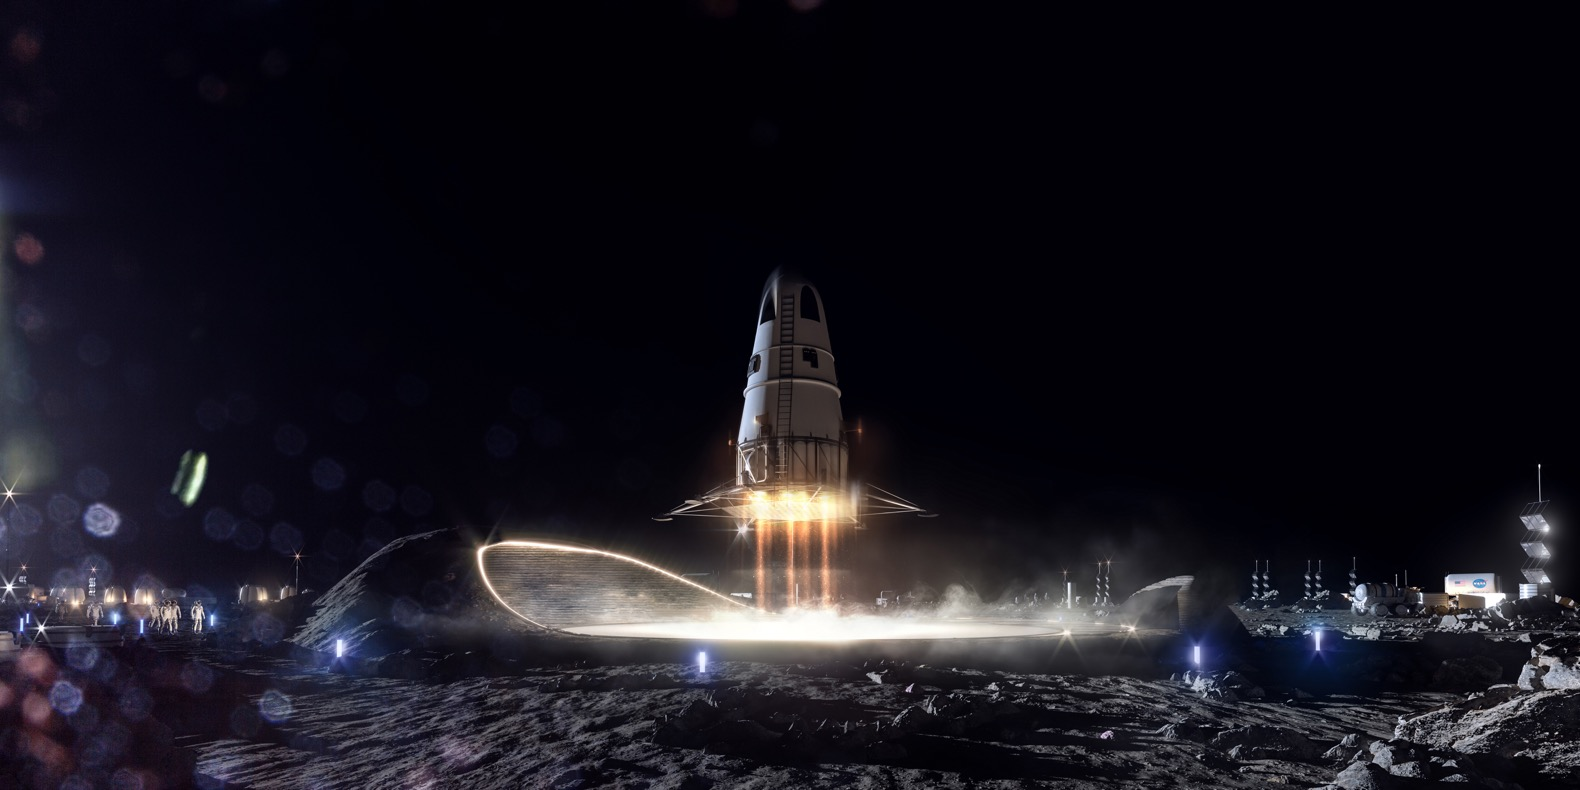 SOM unveils designs for first-ever human settlement on the moon